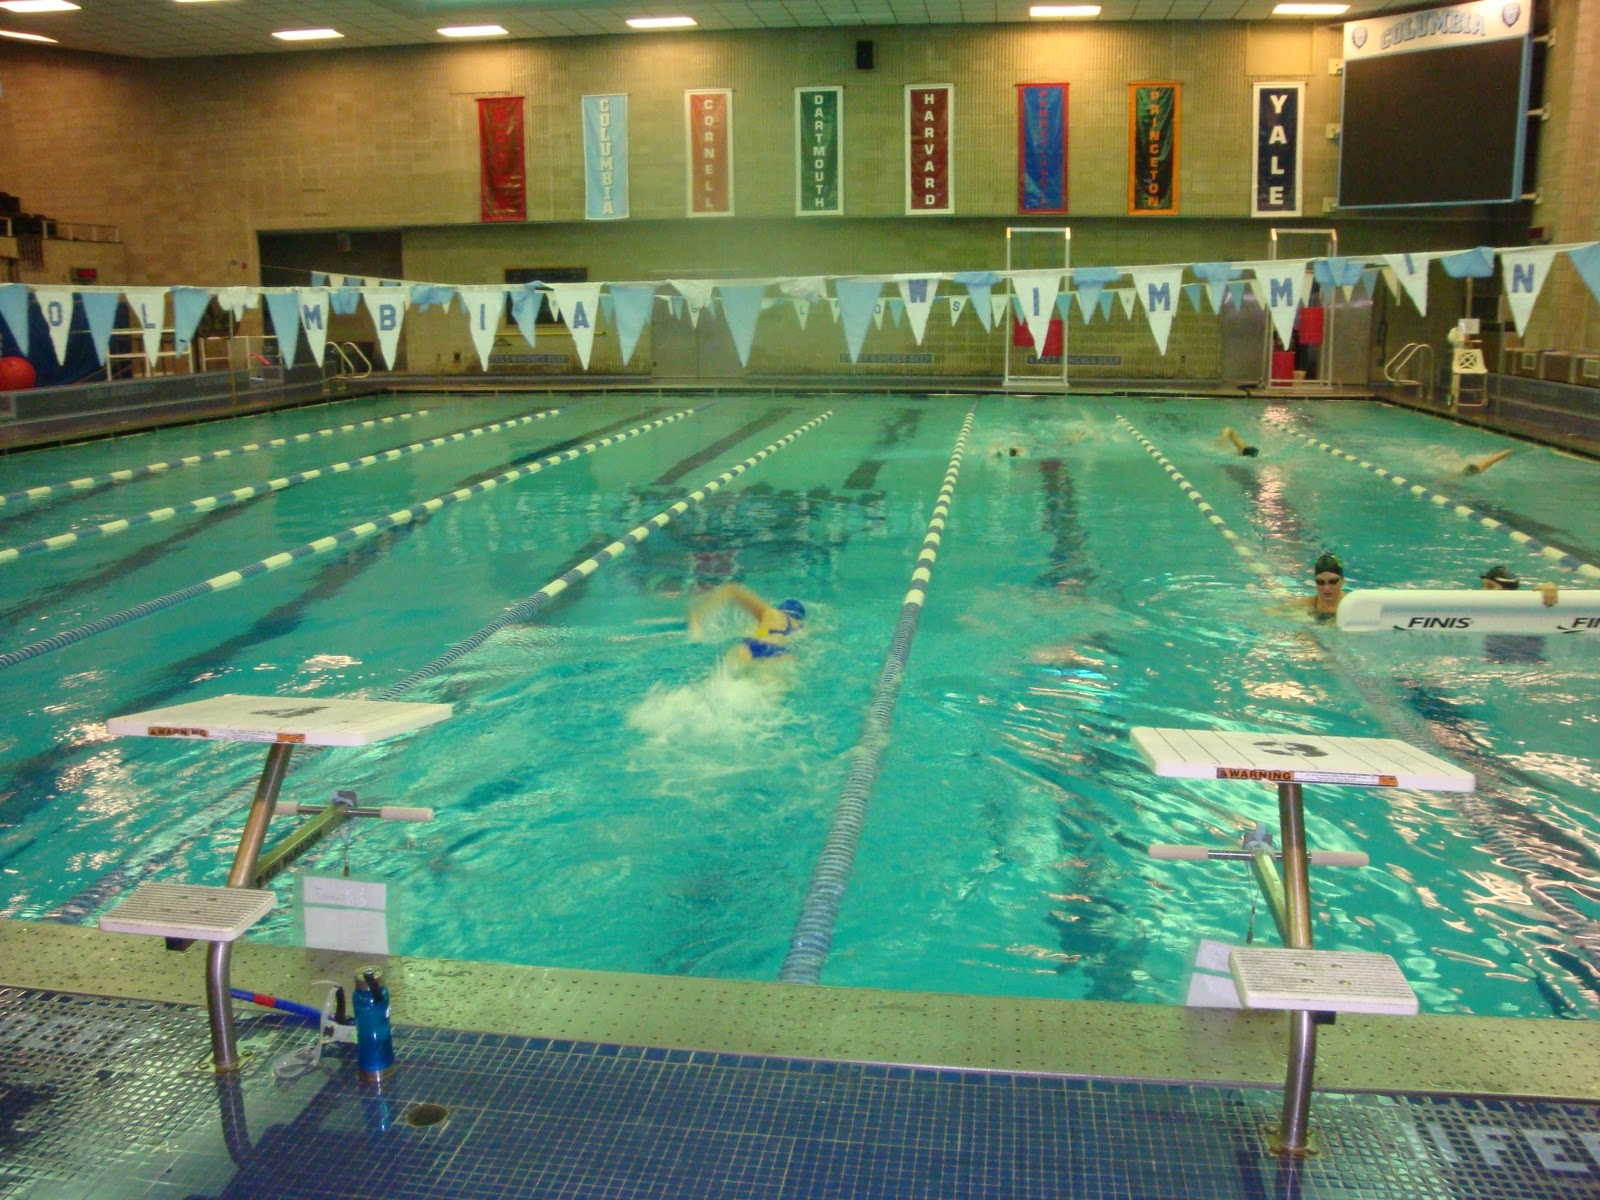 50 swims swim 50 columbia university new york ny for Columbia university swimming pool